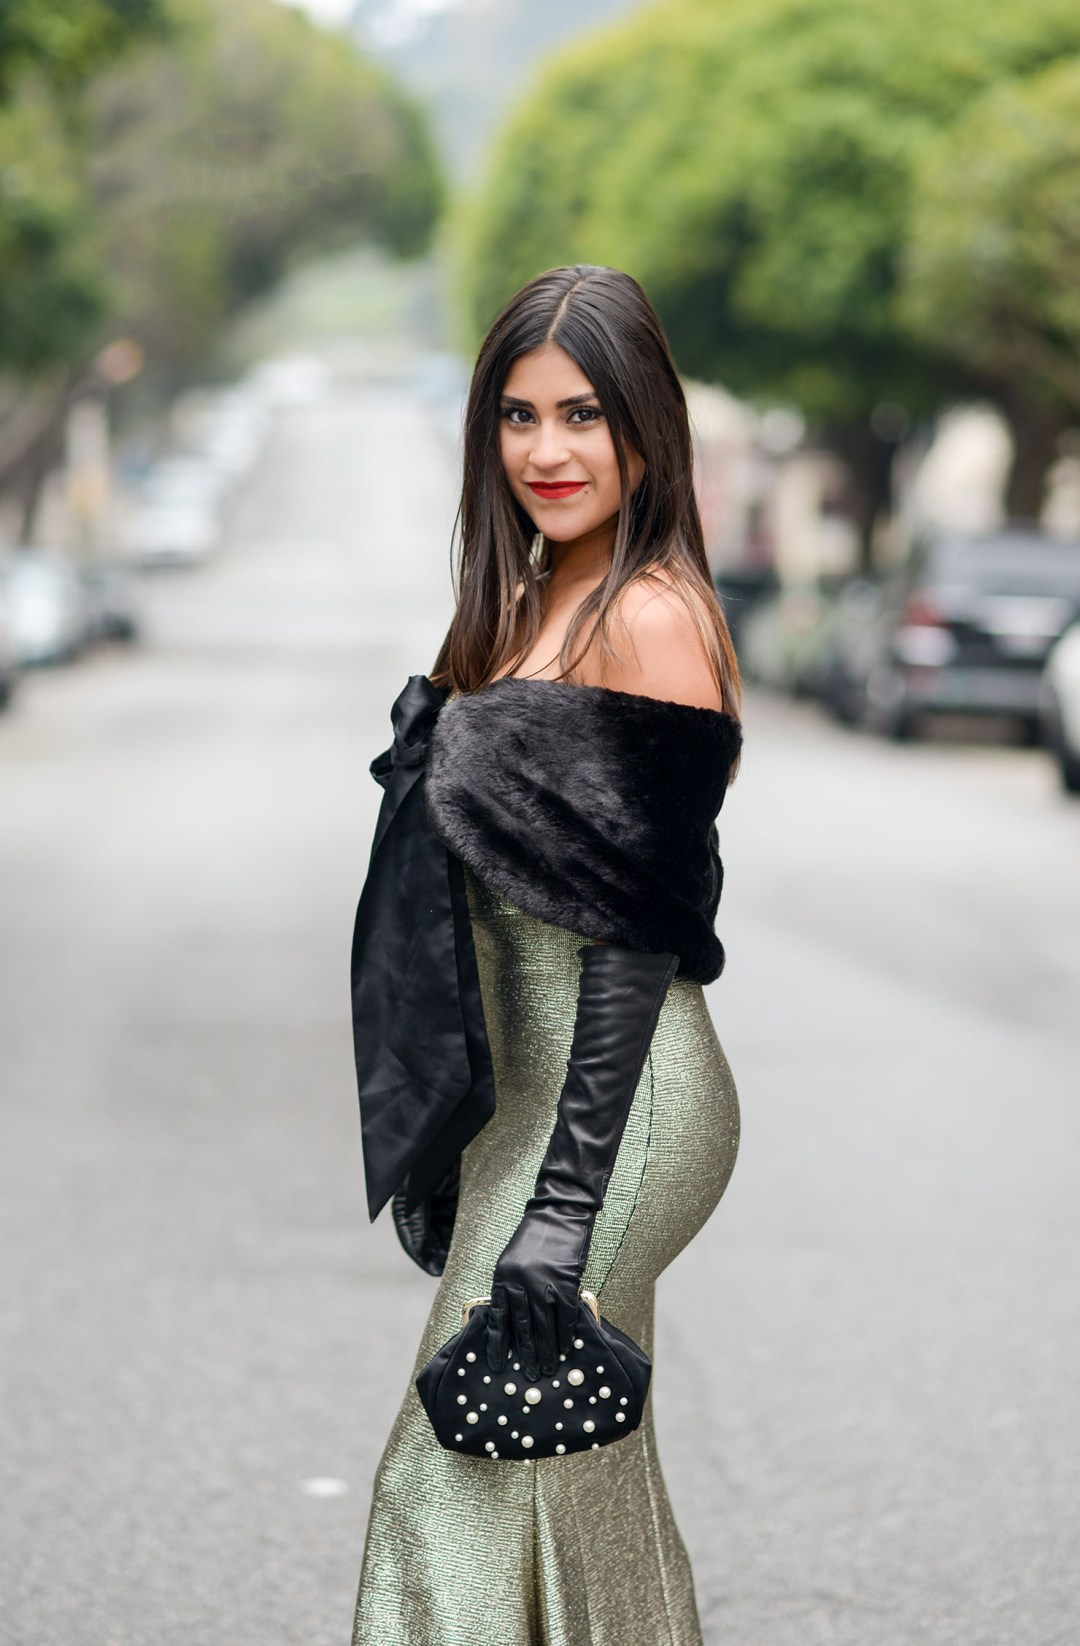 30 things you don't know about me - Kelsey Kaplan Fashion